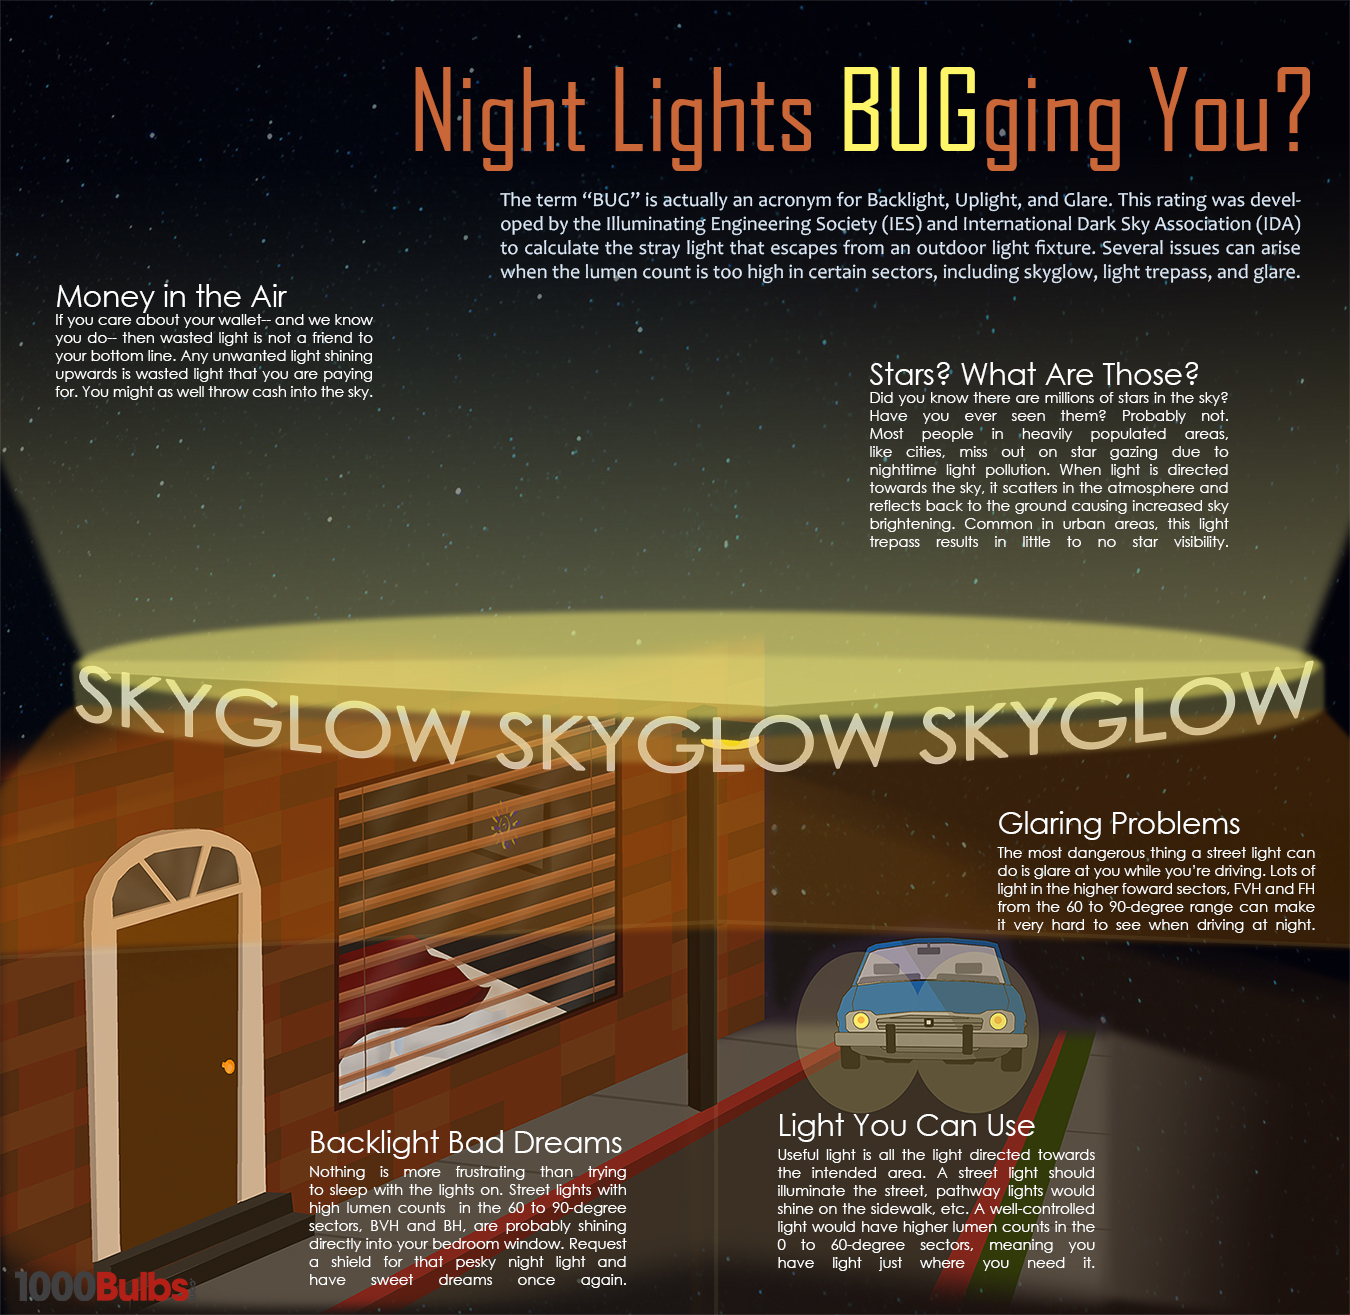 BUGs_diagram-complete-with-text-resize1.jpg